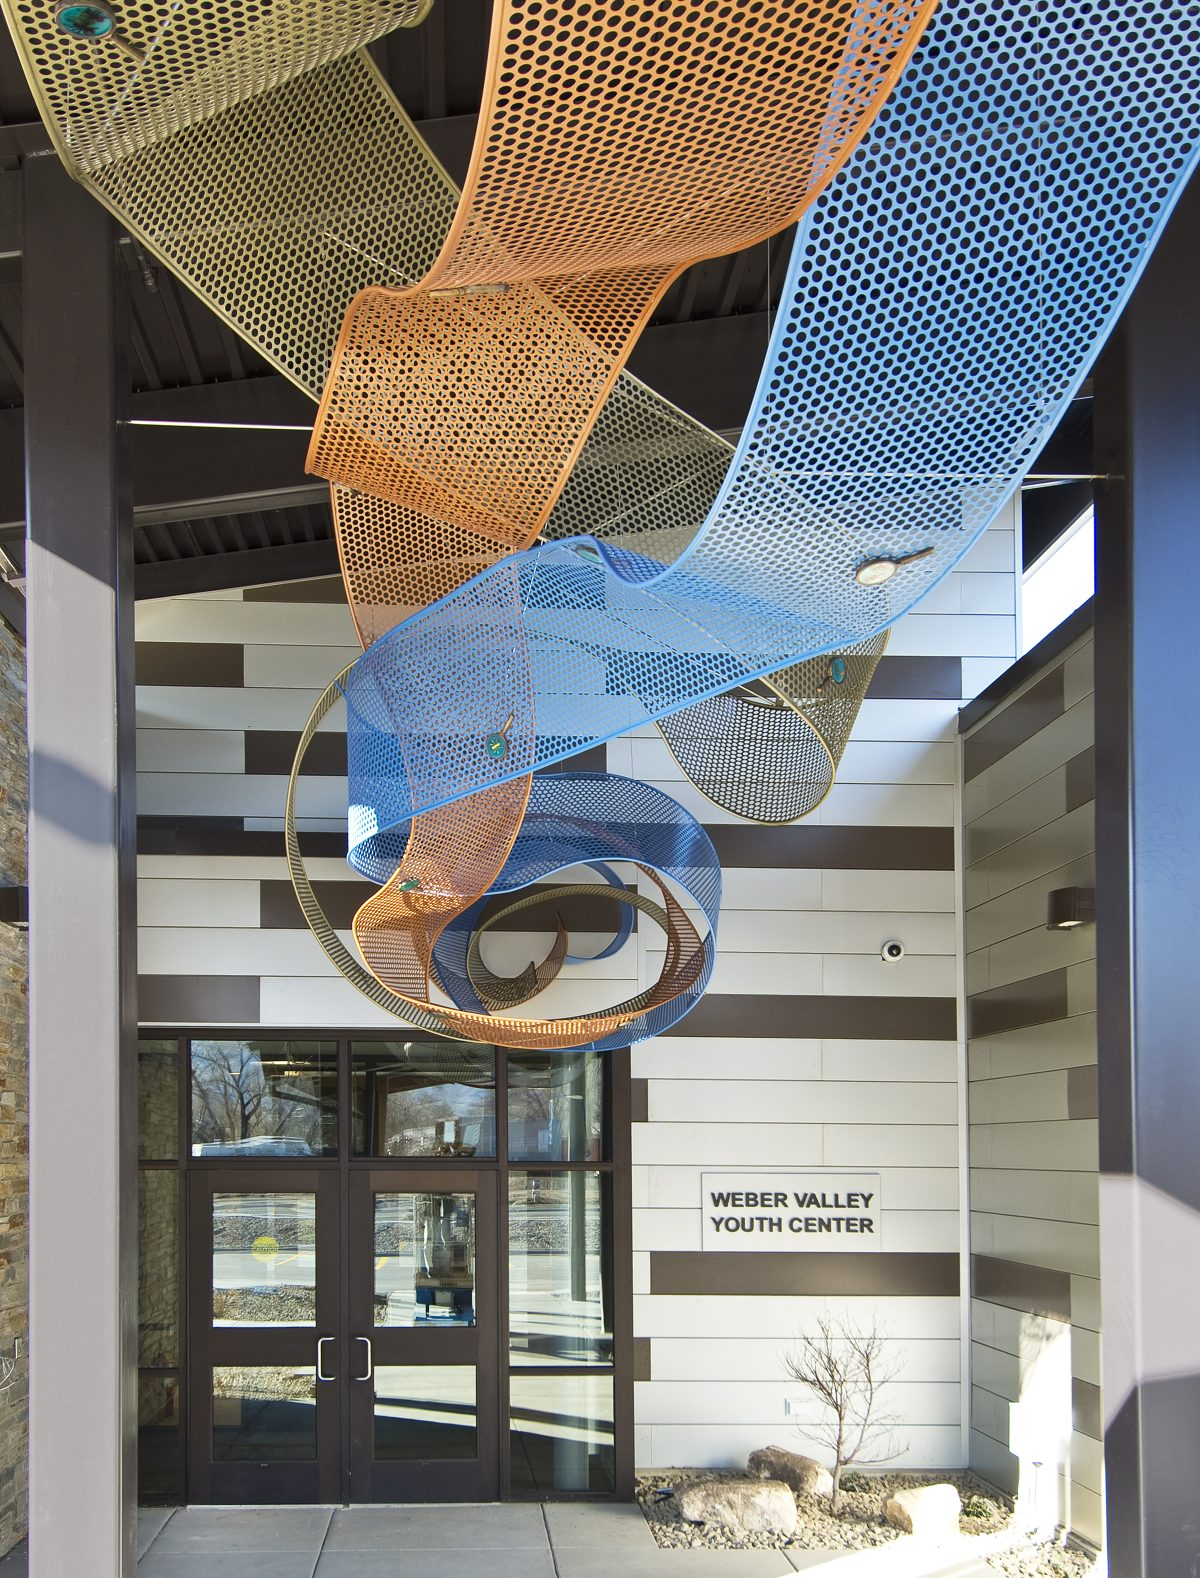 A image of an outdoor, metal sculpture resembling yellow, orange, and blue ribbons.